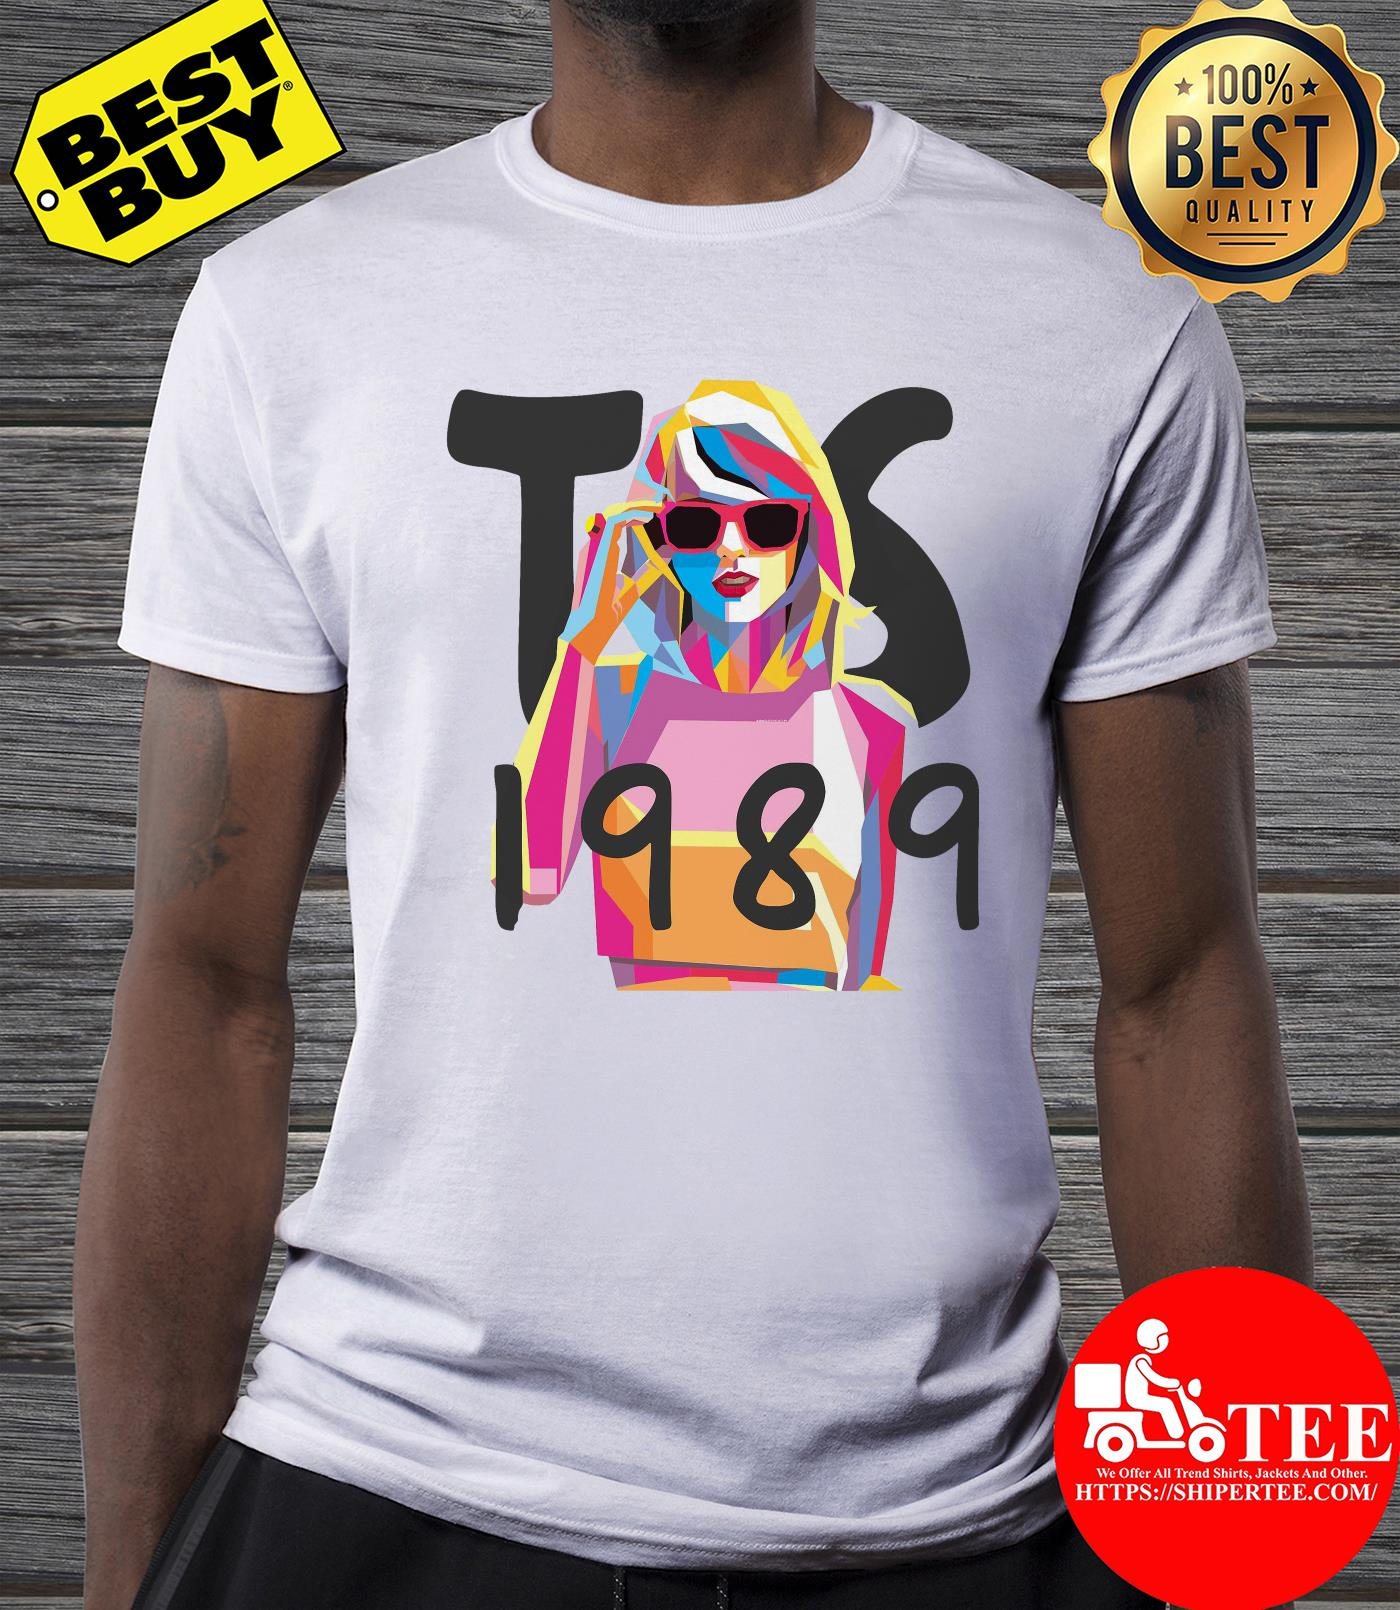 Women Casual Fashion Taylor Swift 1989 shirt